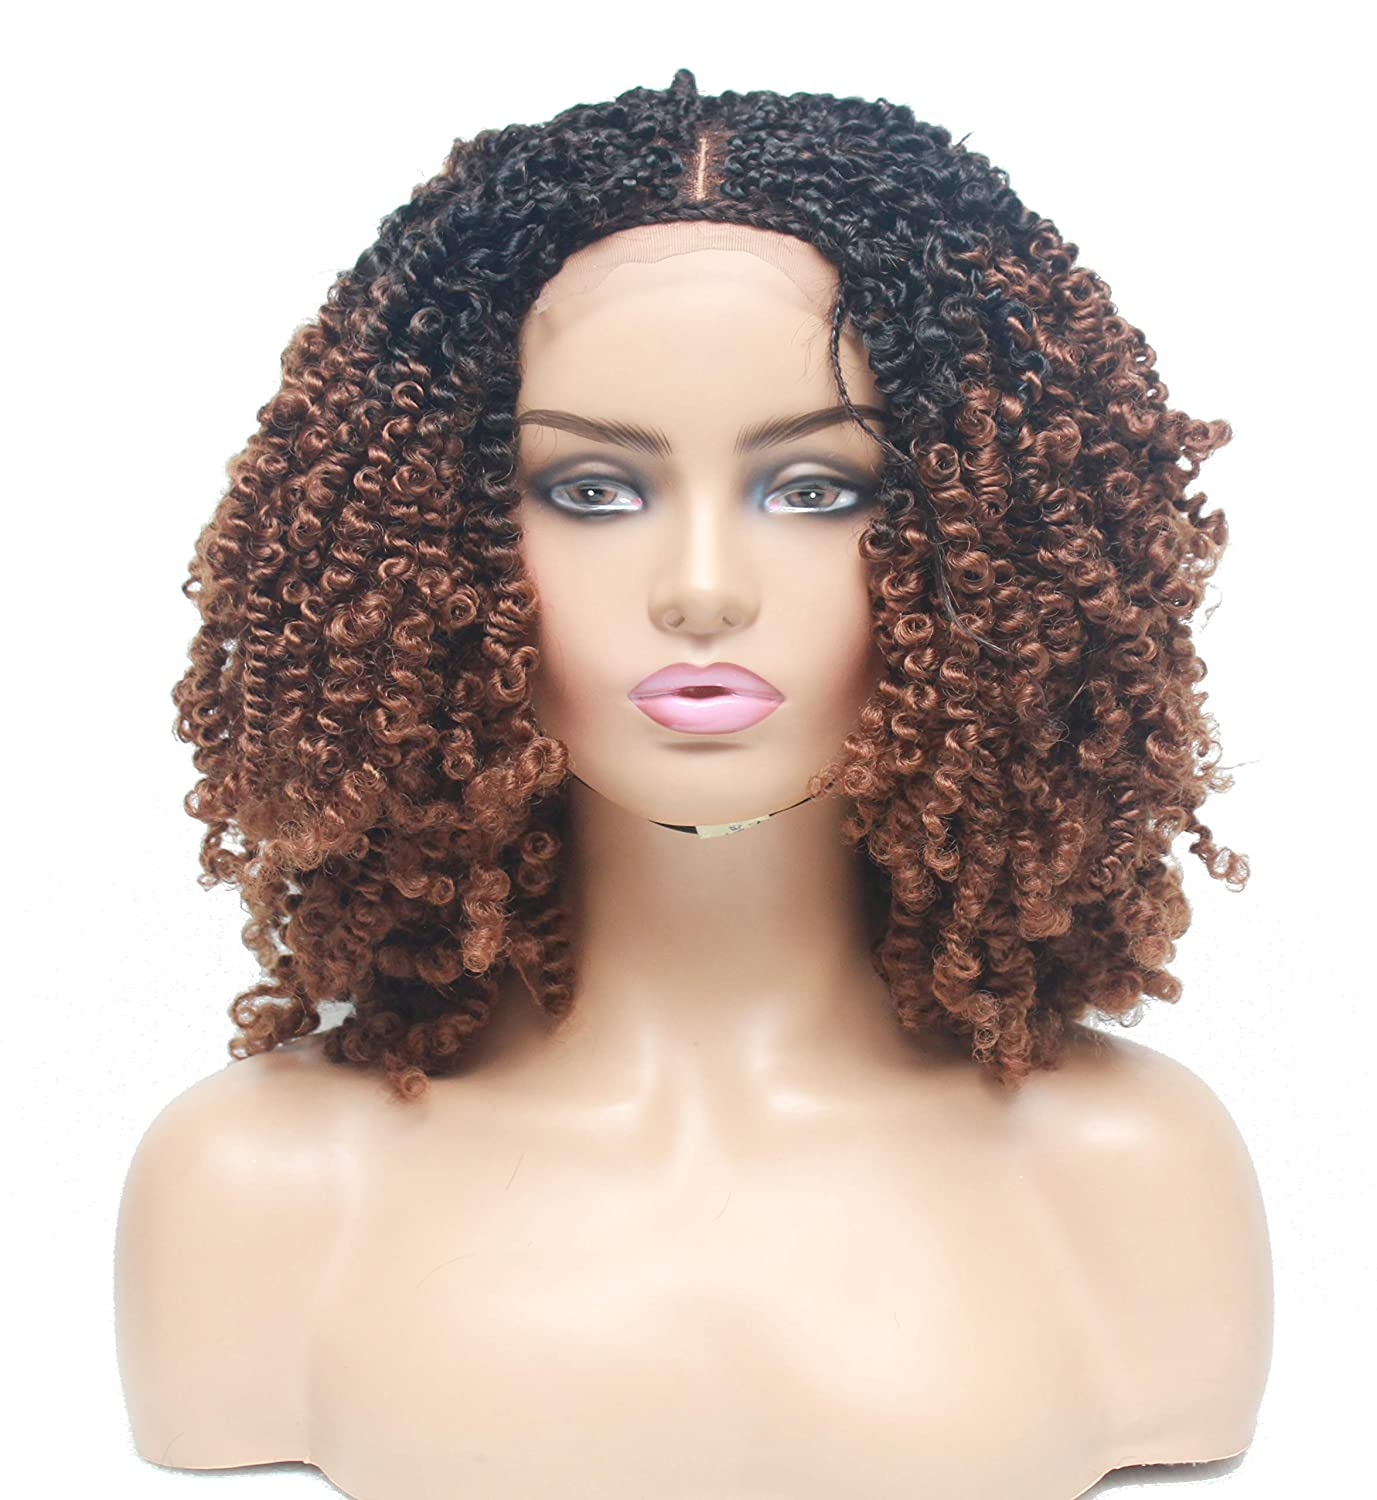 Lace closure Branded goods braided wig- Braided for [Alternative dealer] wigs women- black Passion